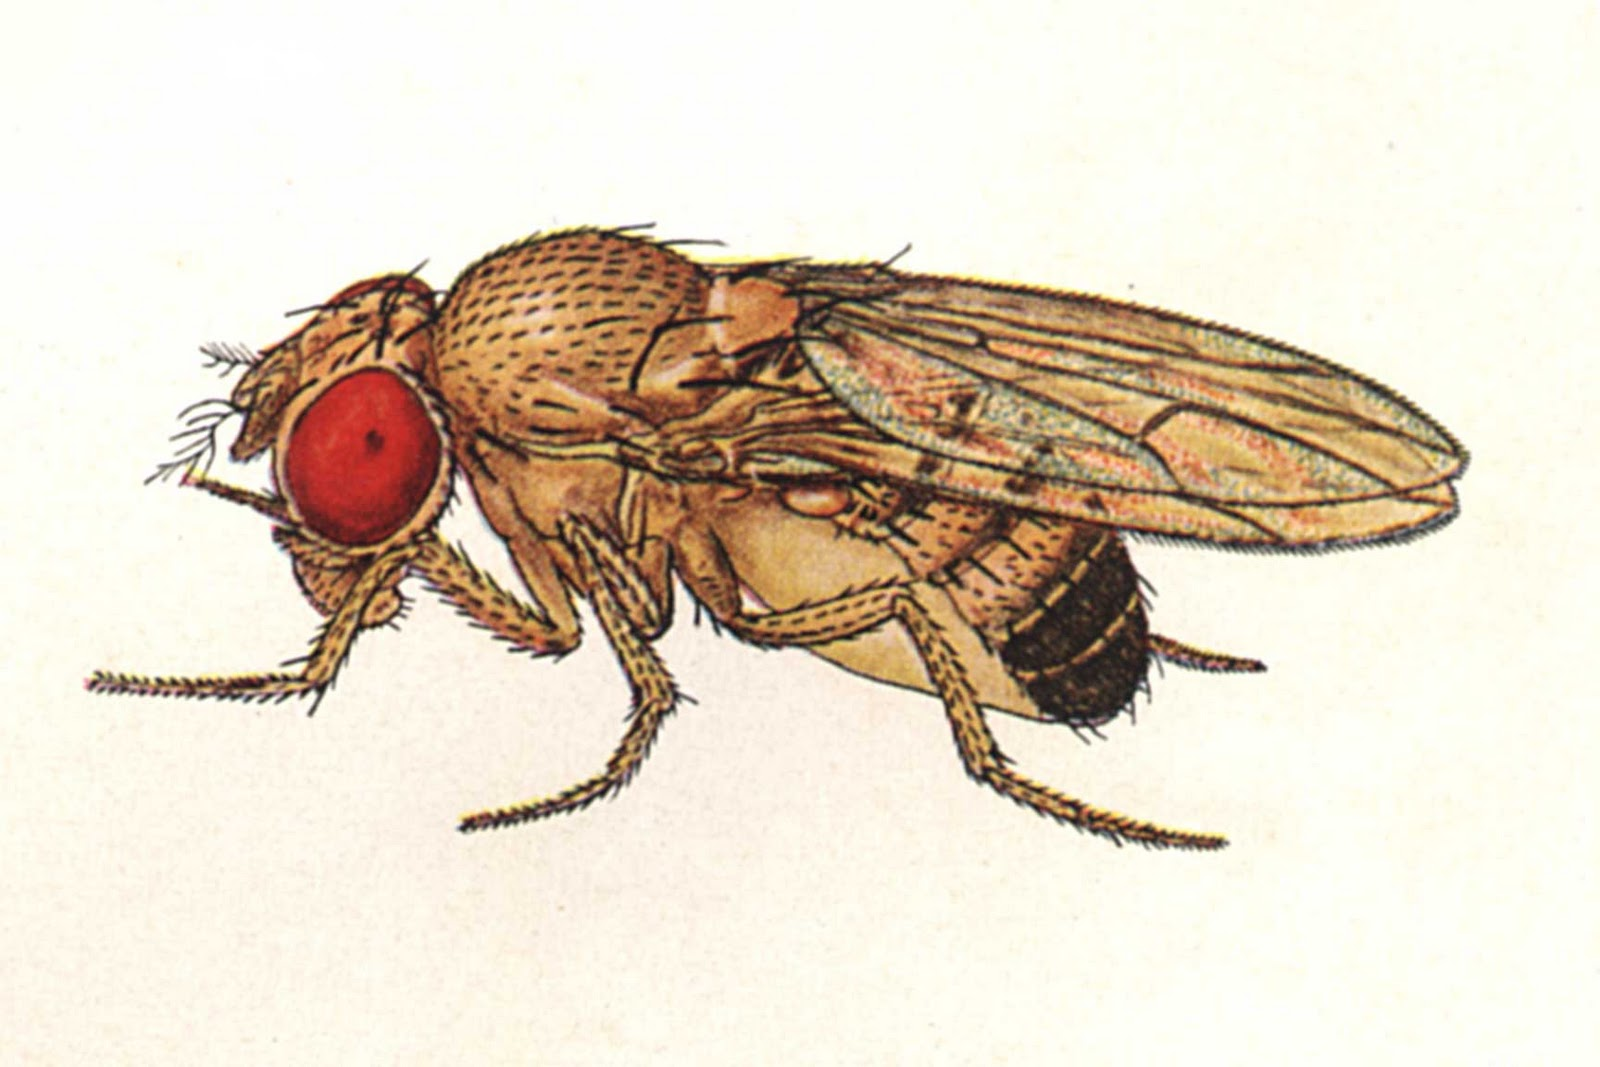 The Small Science Collective Fruit Flies